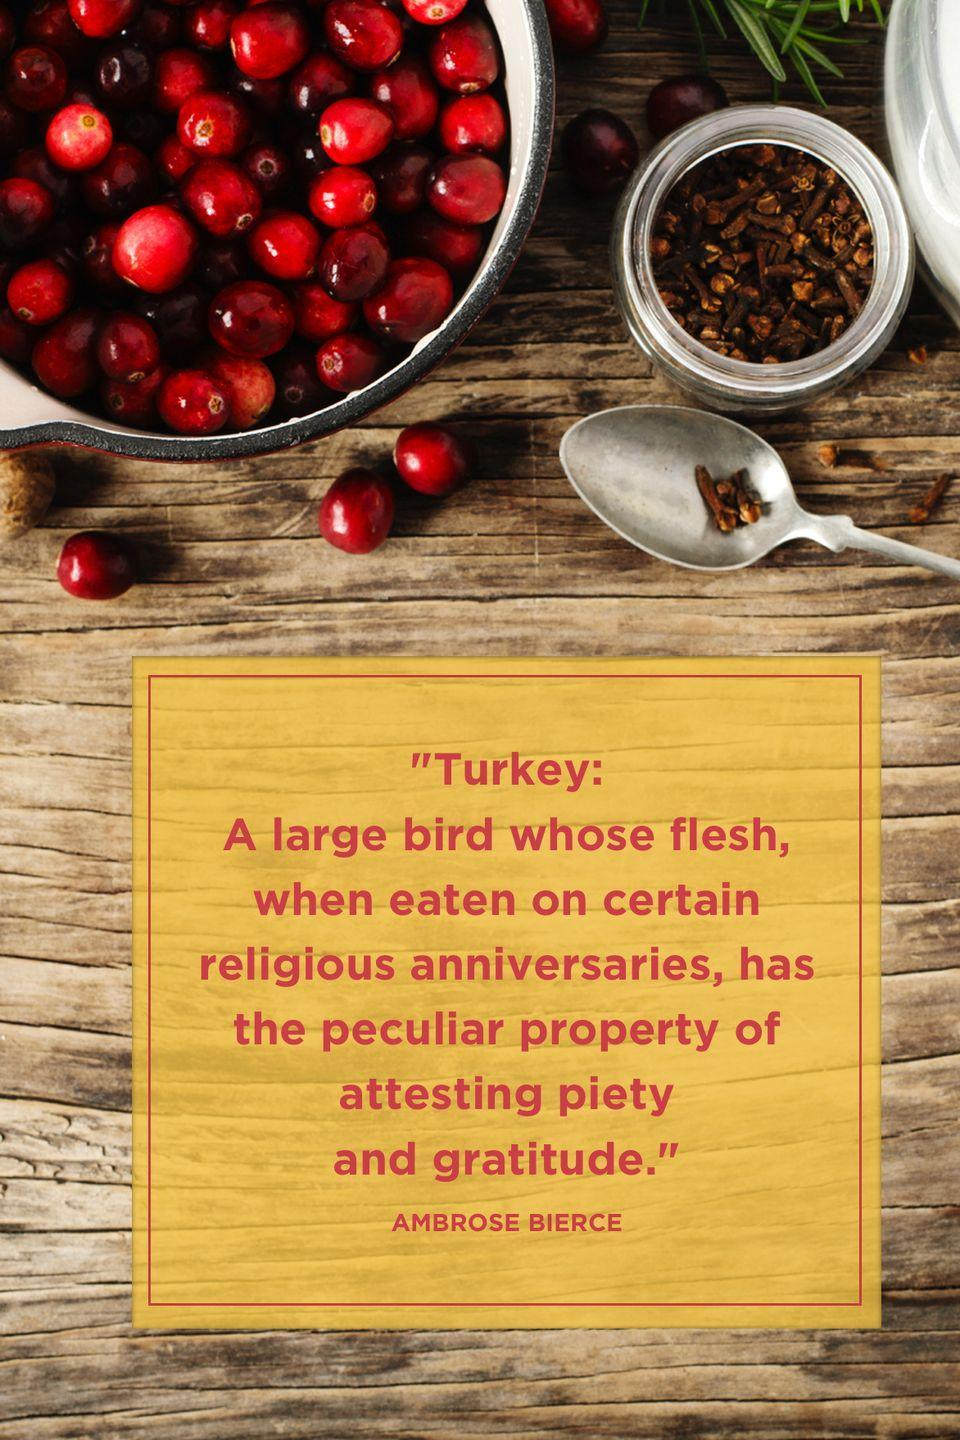 "<p>""Turkey: A large bird whose flesh, when eaten on certain religious anniversaries, has the peculiar property of attesting piety and gratitude."" </p>"